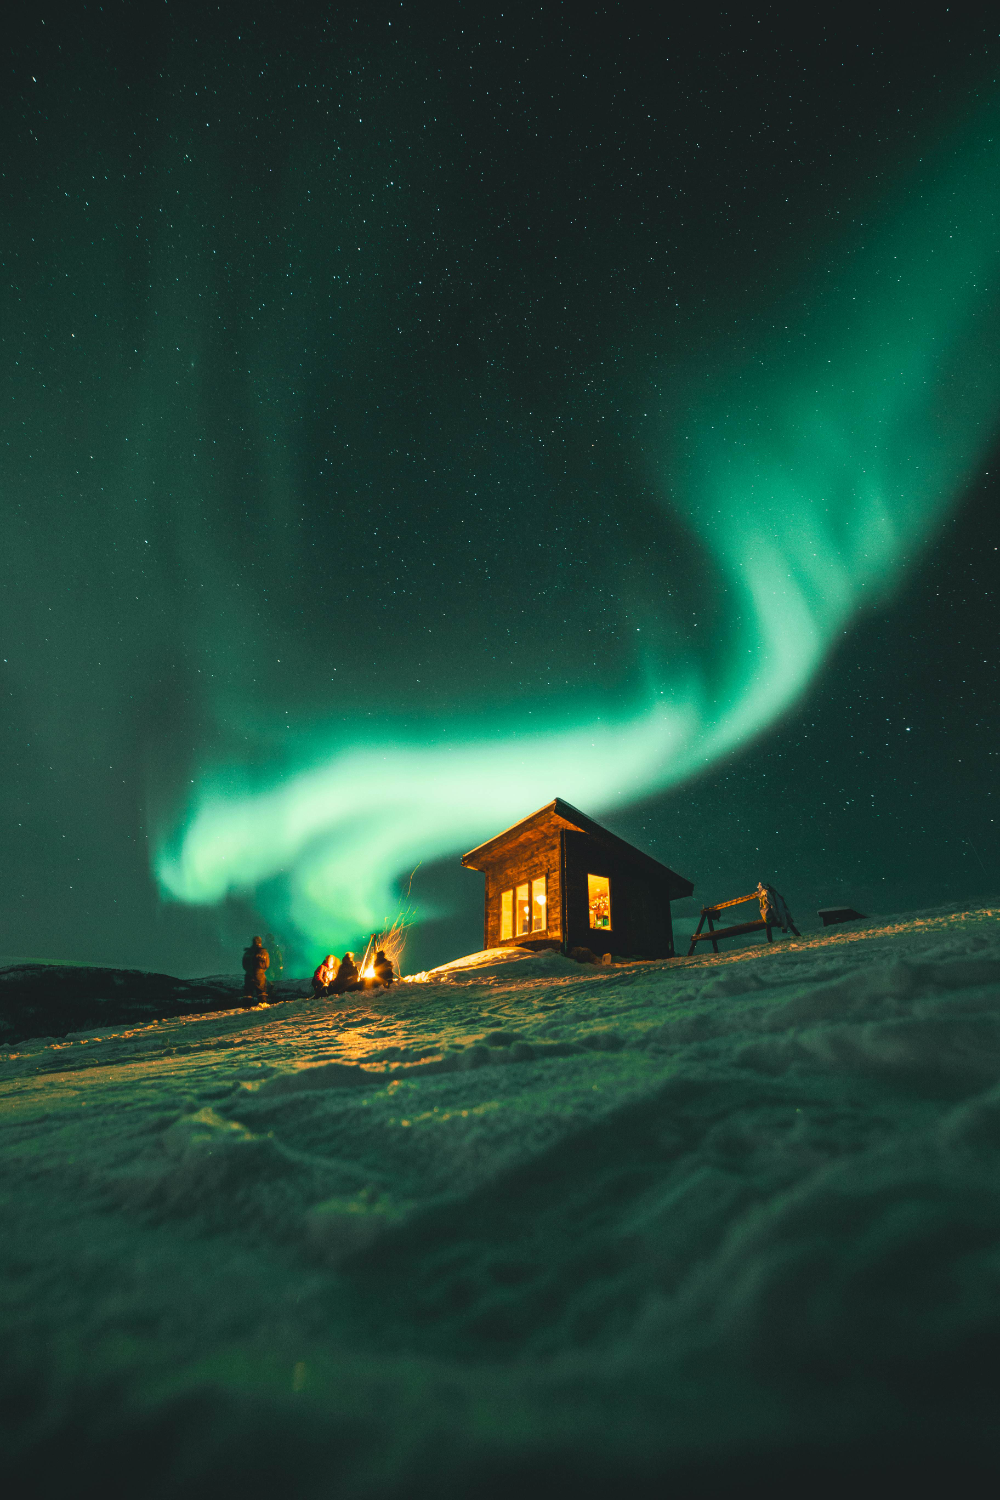 Northern Lights In Alta Norway Northern Lights Hotel Northern Lights Norway Northern Lights Photography